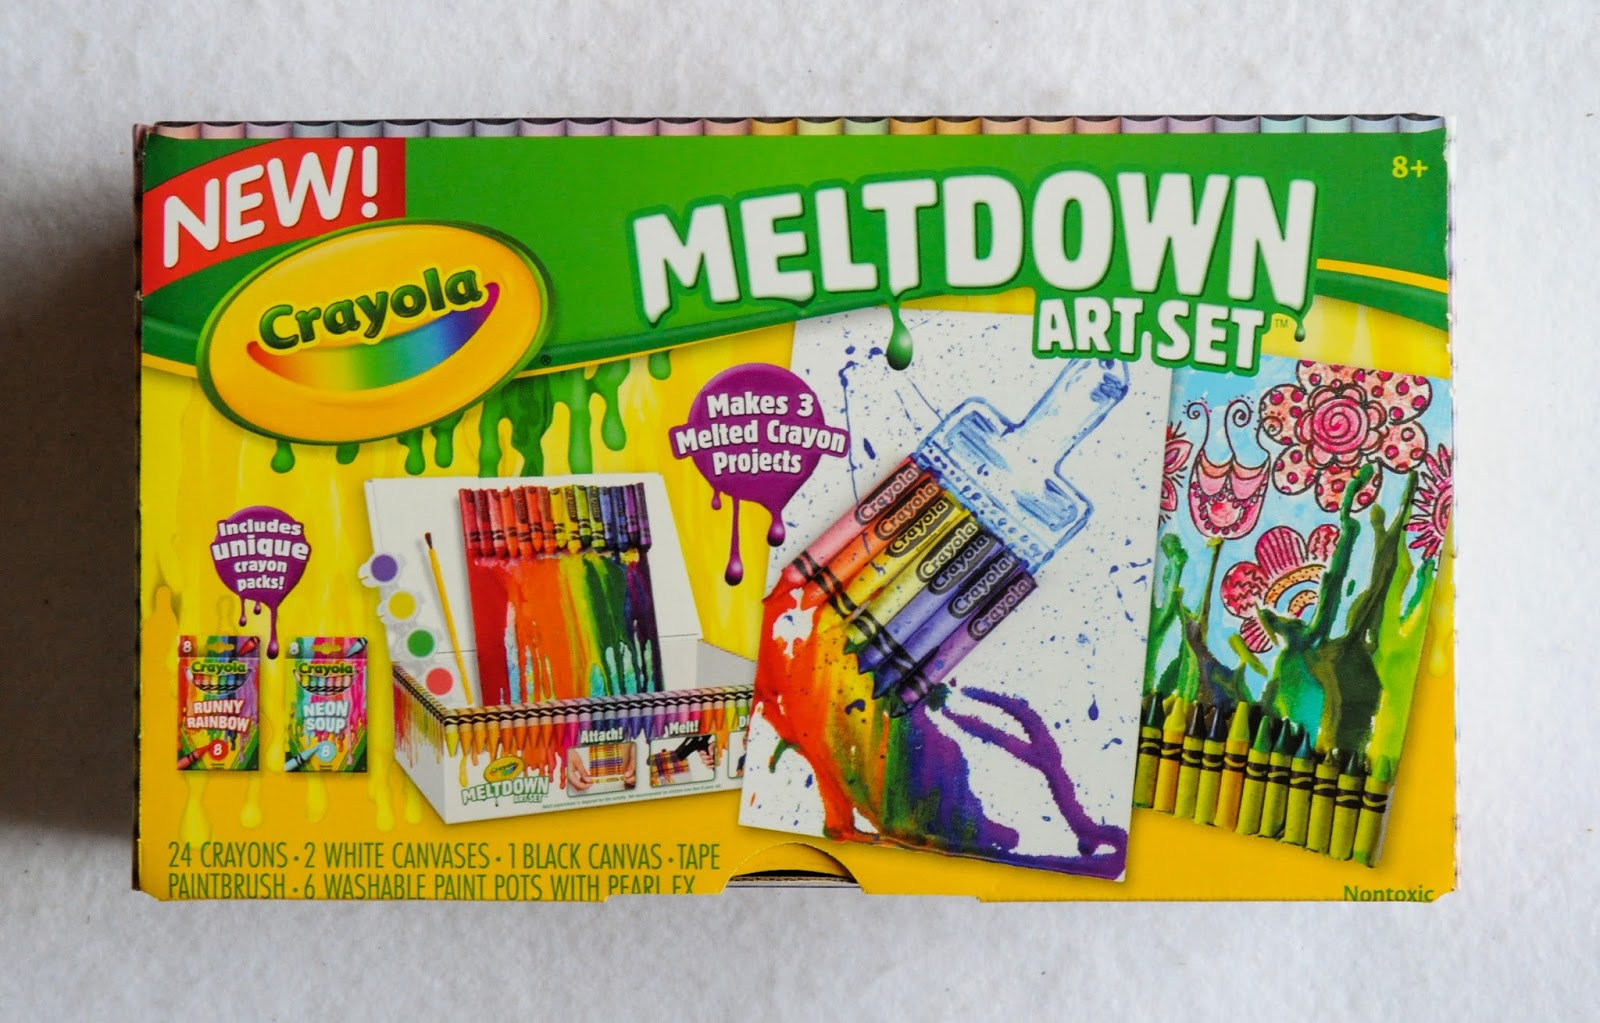 Crayola Meltdown Crayons Art Set: What\'s Inside the Box | Jenny\'s ...